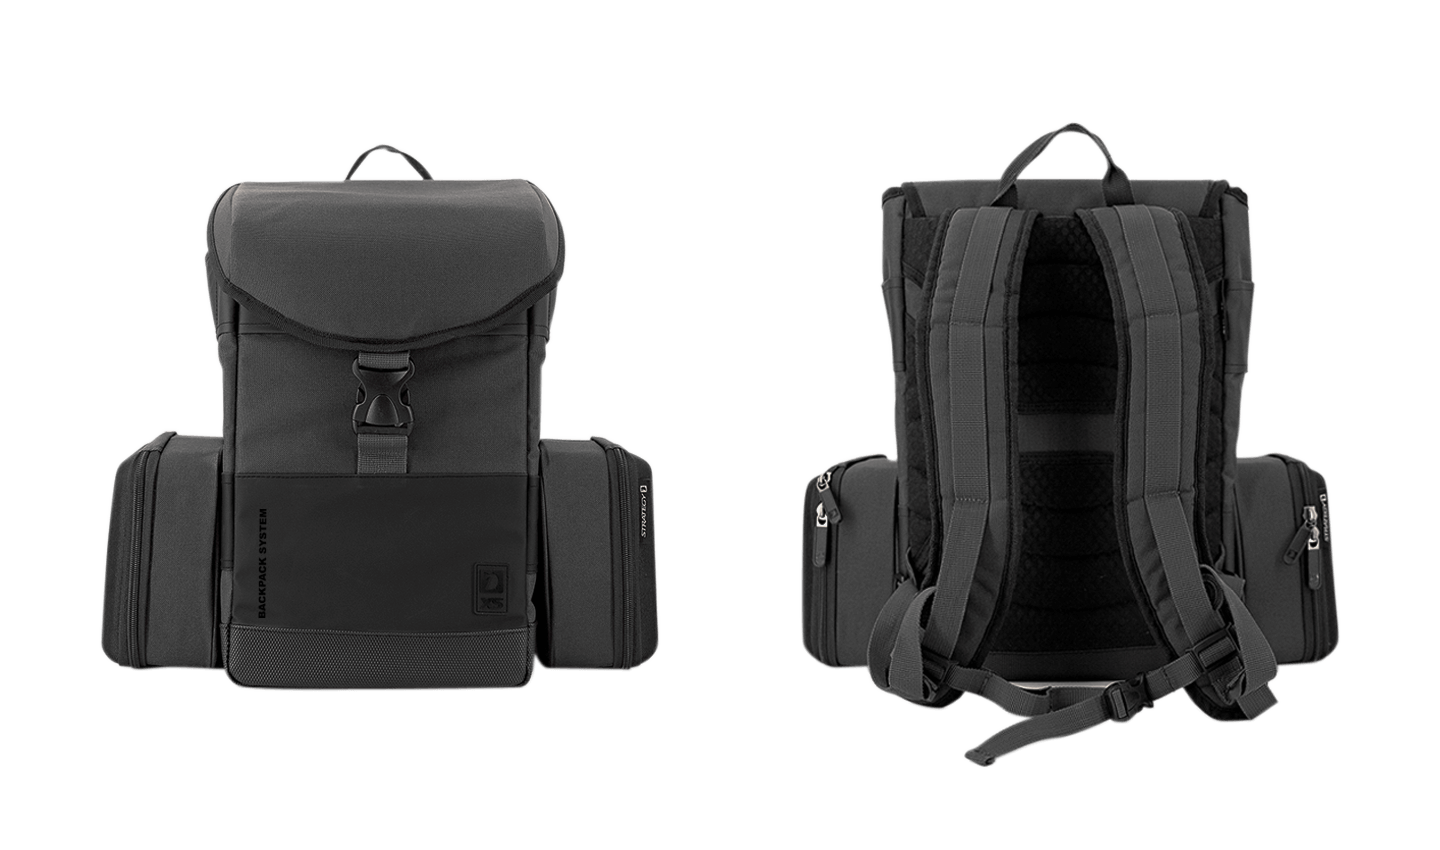 XS System Backpack - Front- & Rückseite 02